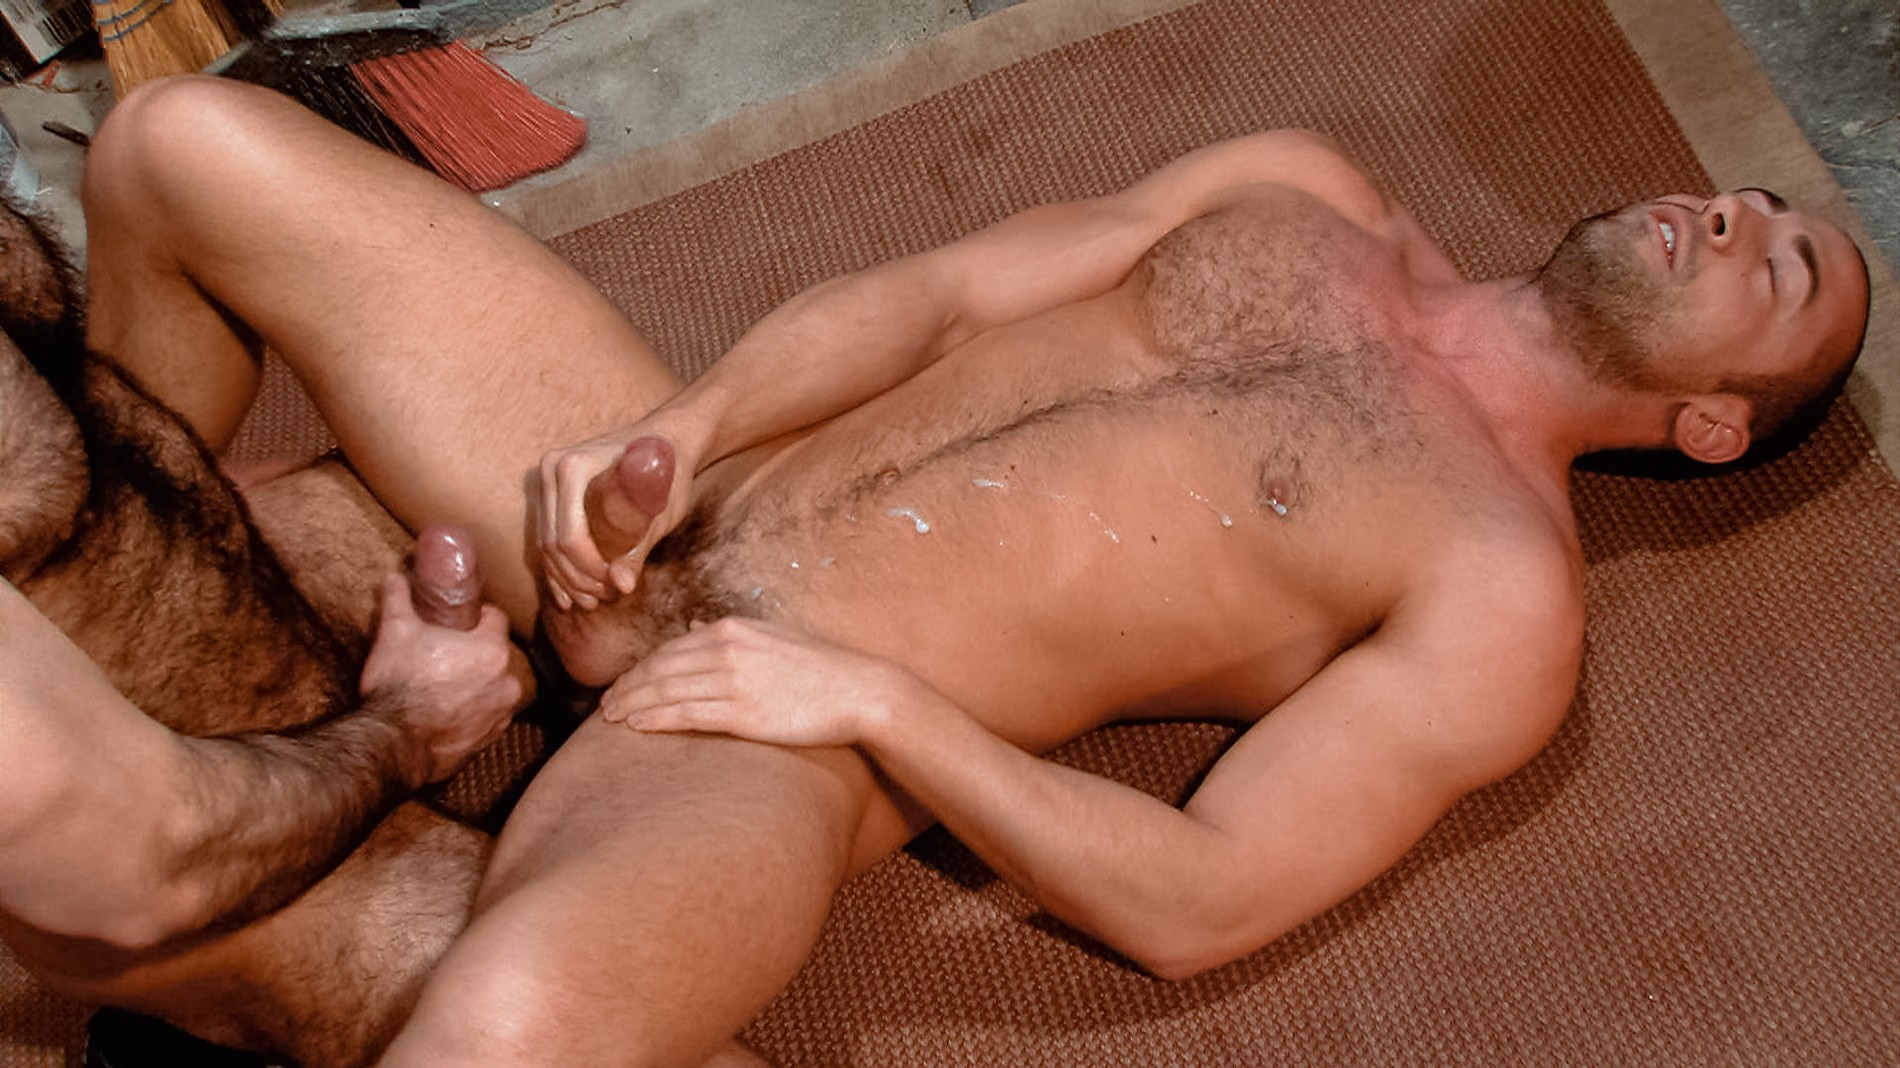 Catch 22: Adam Champ & Donnie Dean